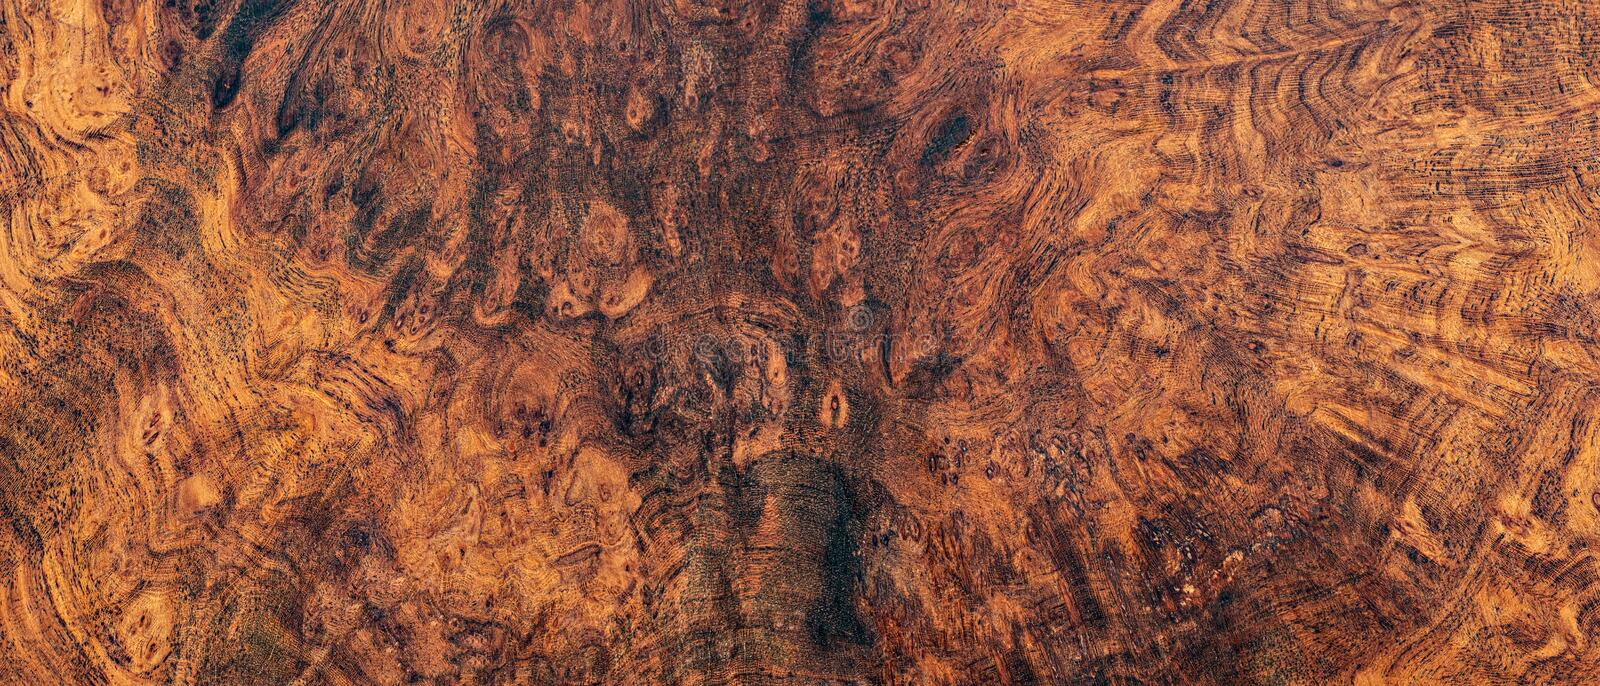 Nature afzelia burl wood stock photos